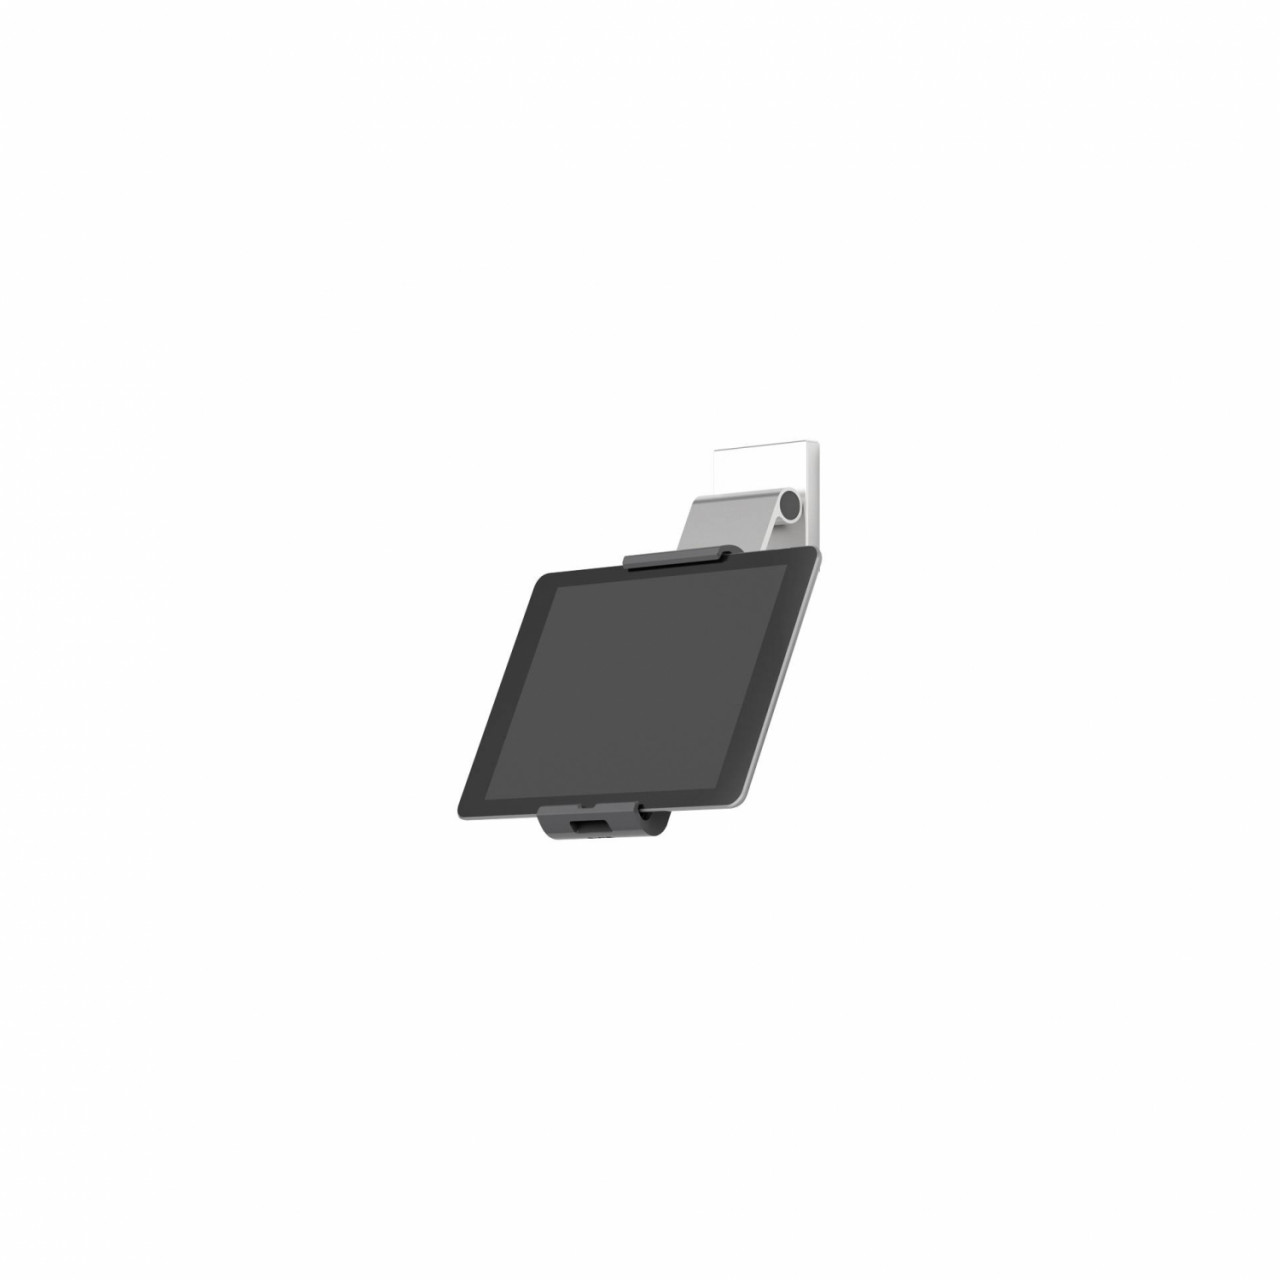 Durable Tablet Holder WALL PRO metallic silber 8935-23